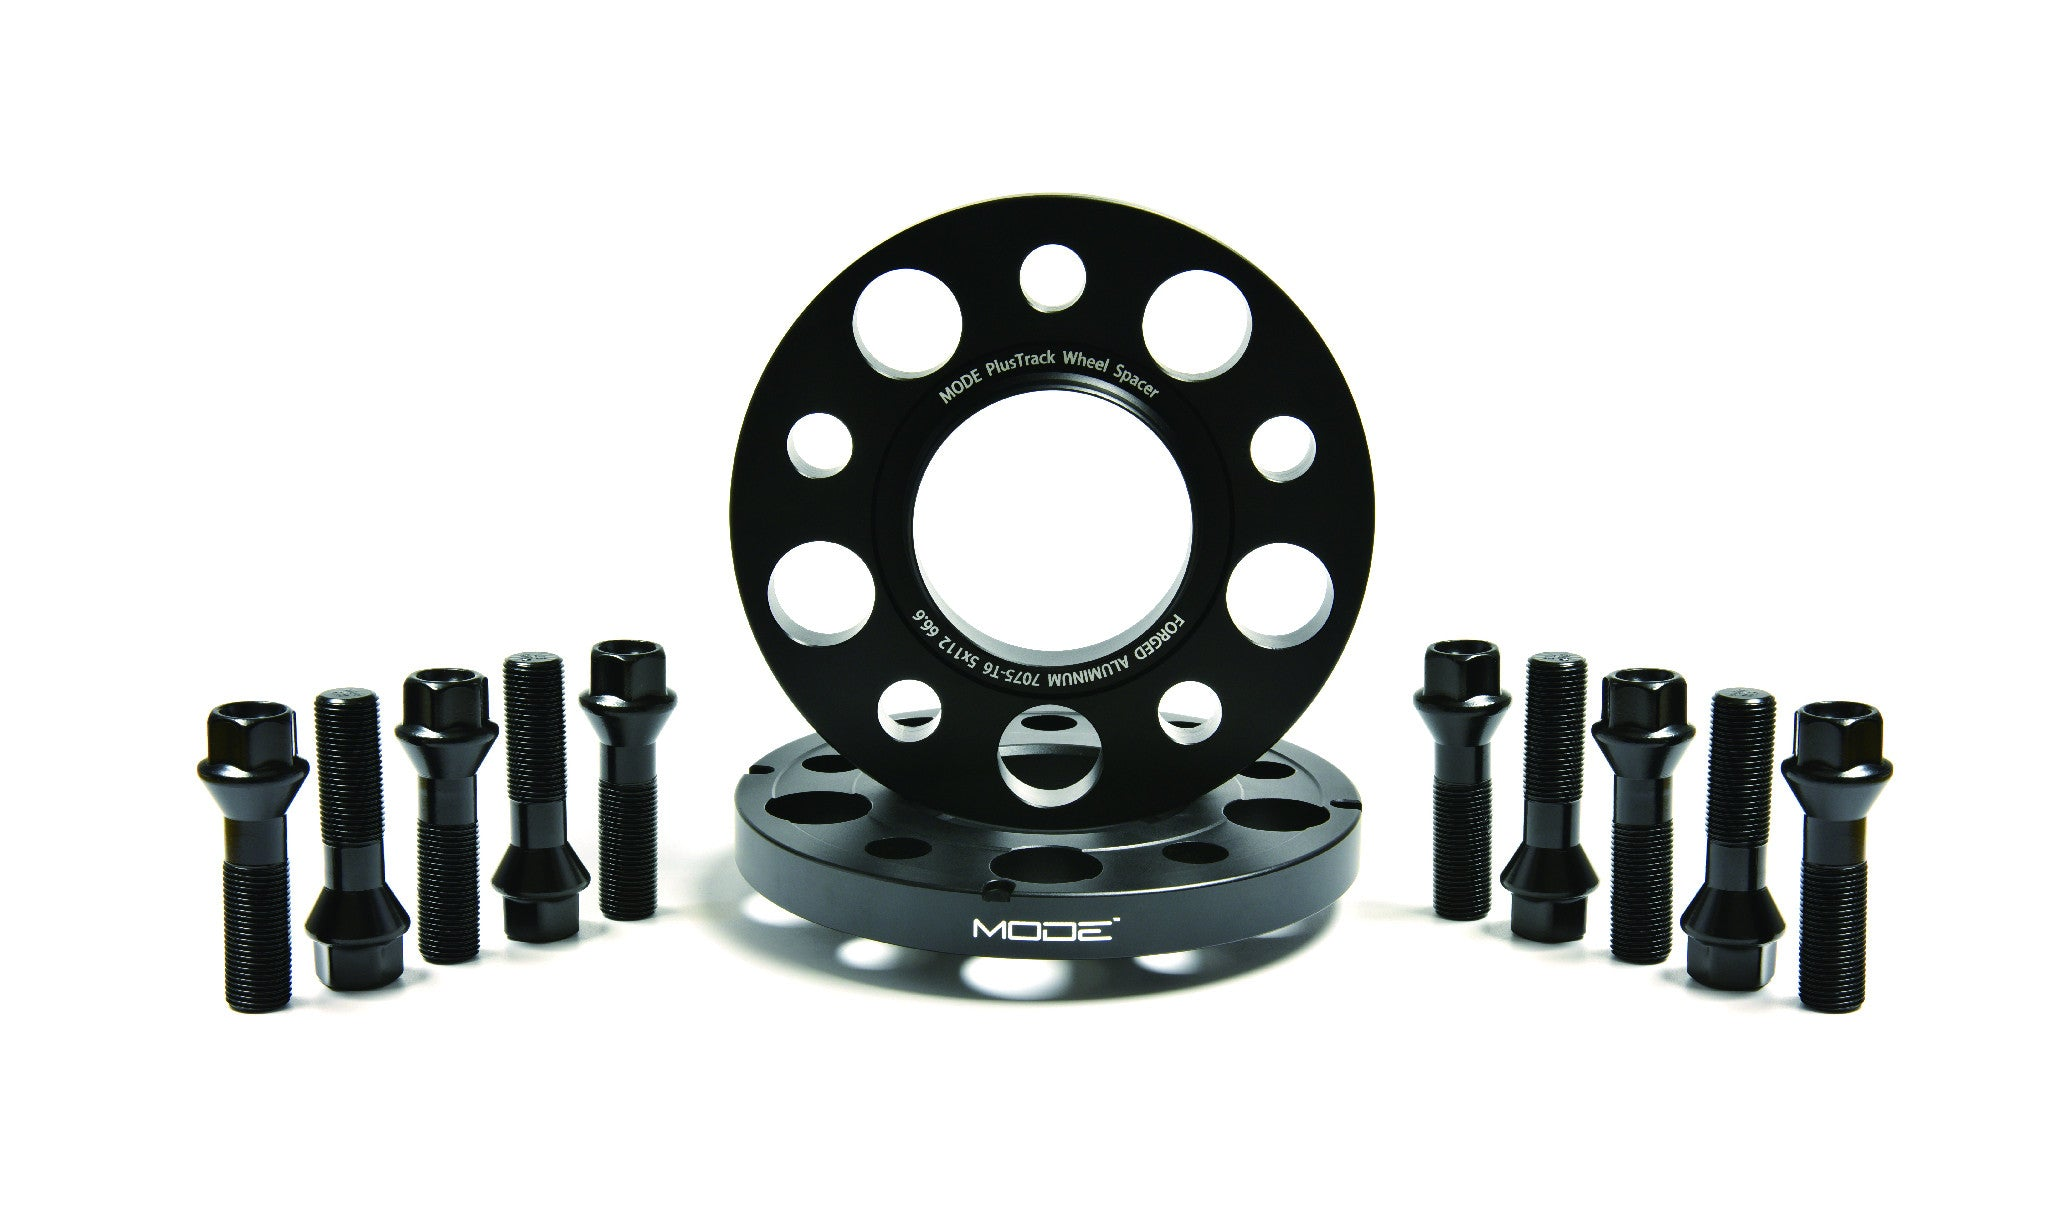 MODE PlusTrack Wheel Spacer Kit 15mm Lamborghini Gallardo